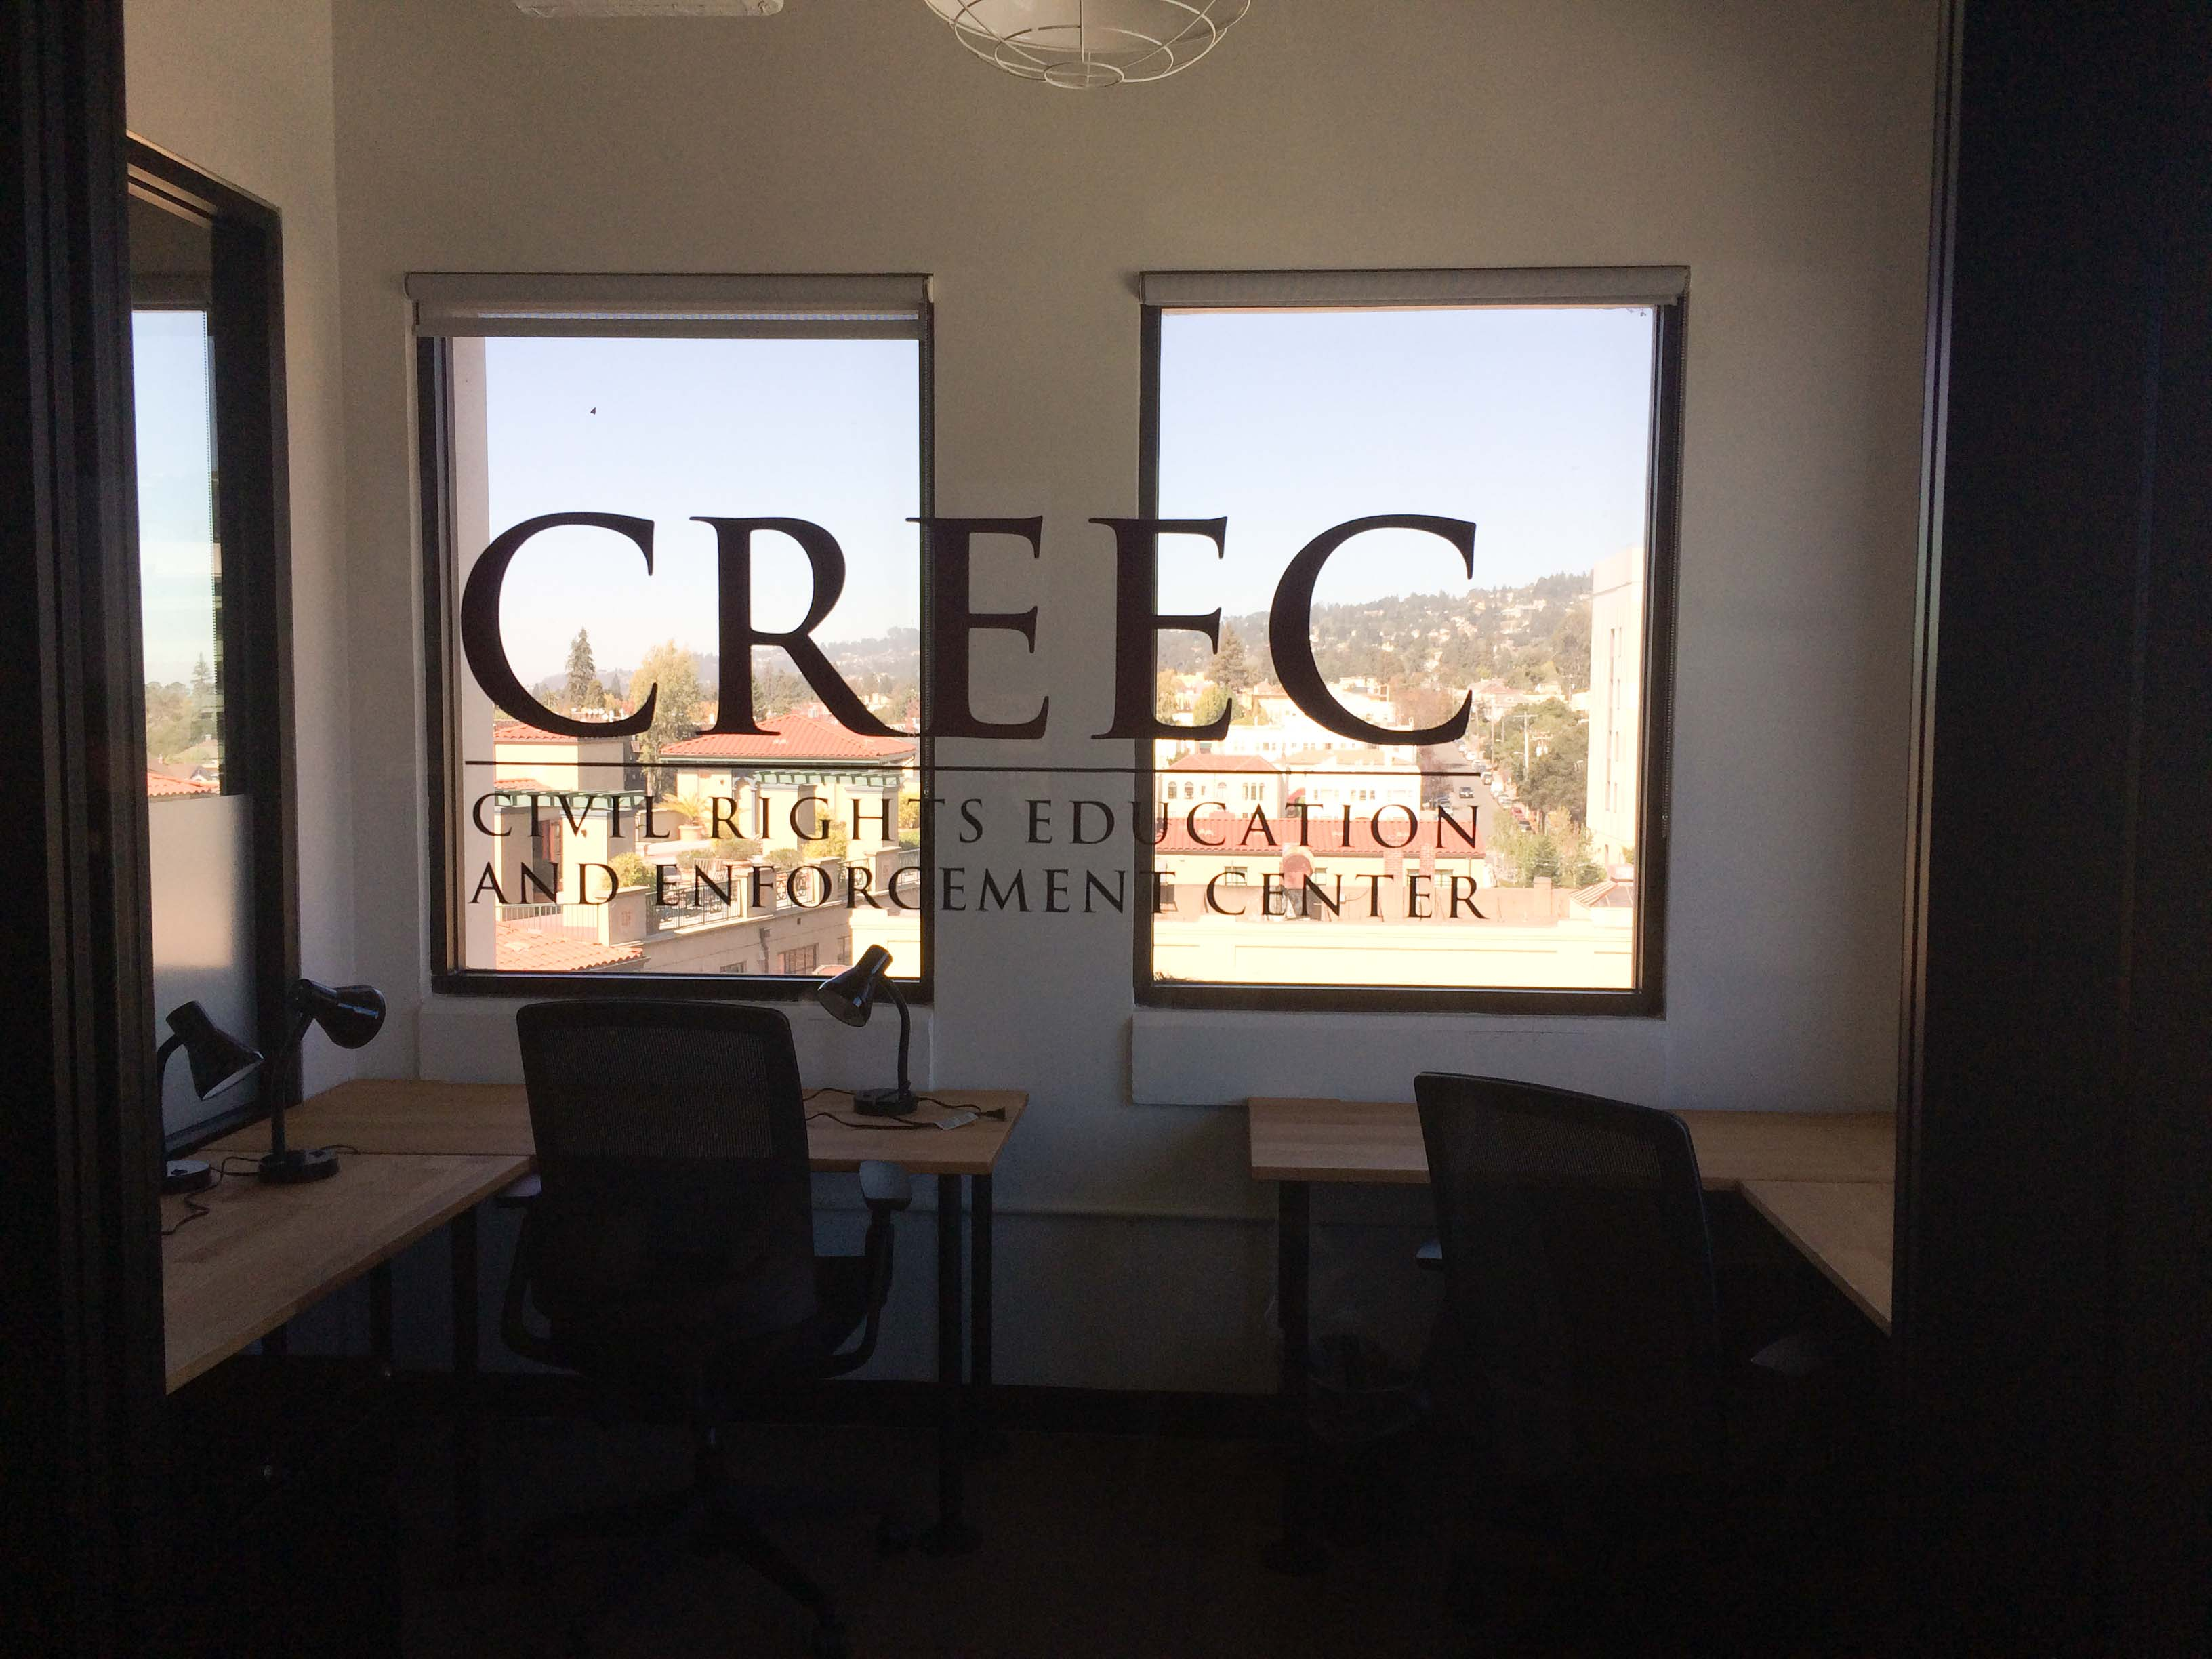 Image:  CREEC logo painted on the front window of new office space.